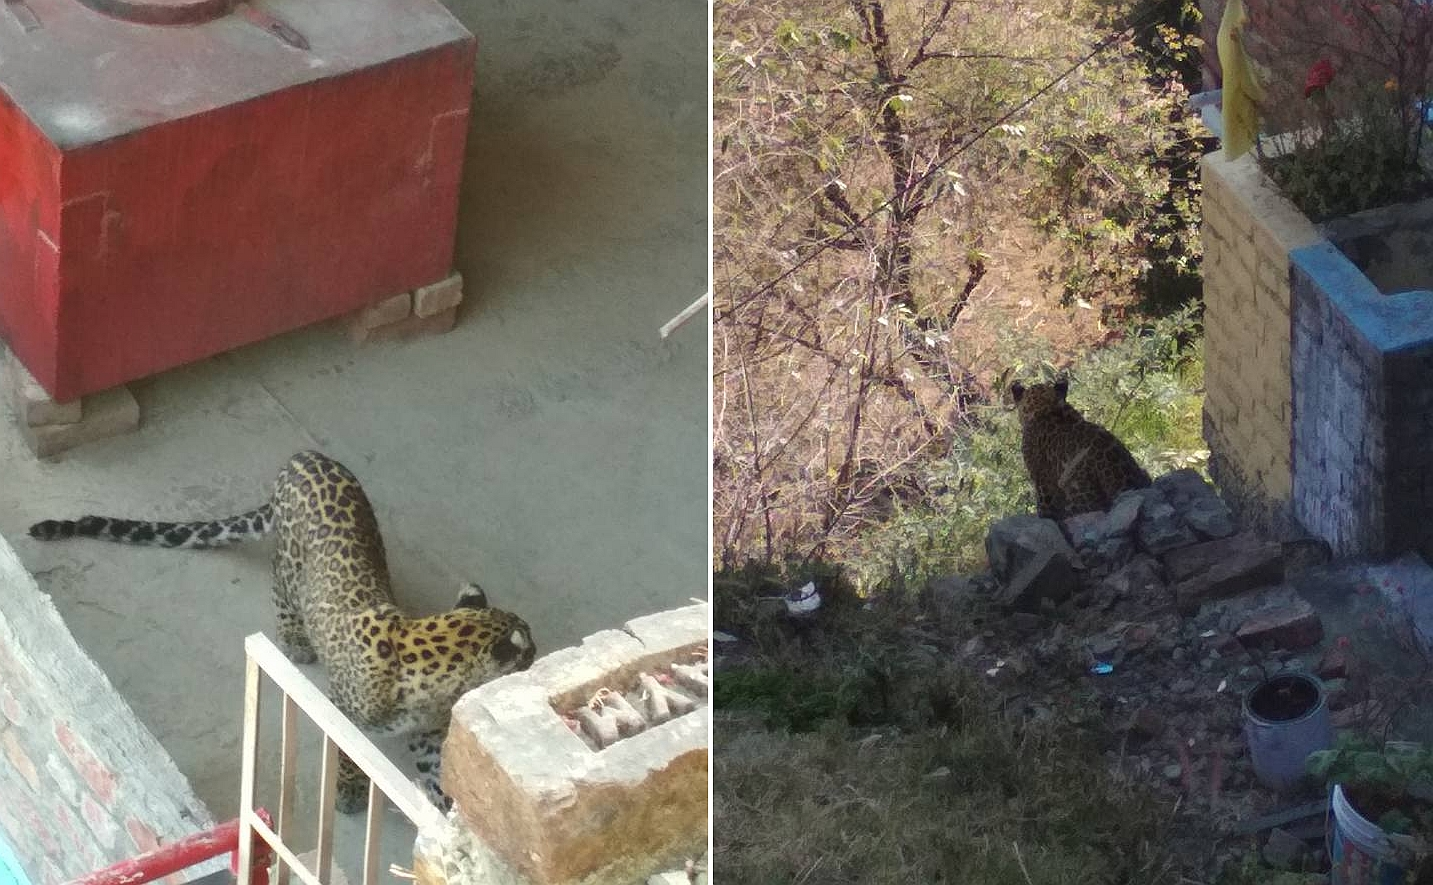 Watch: An interesting case of leopard sighting in Shimla's Dhanda locality